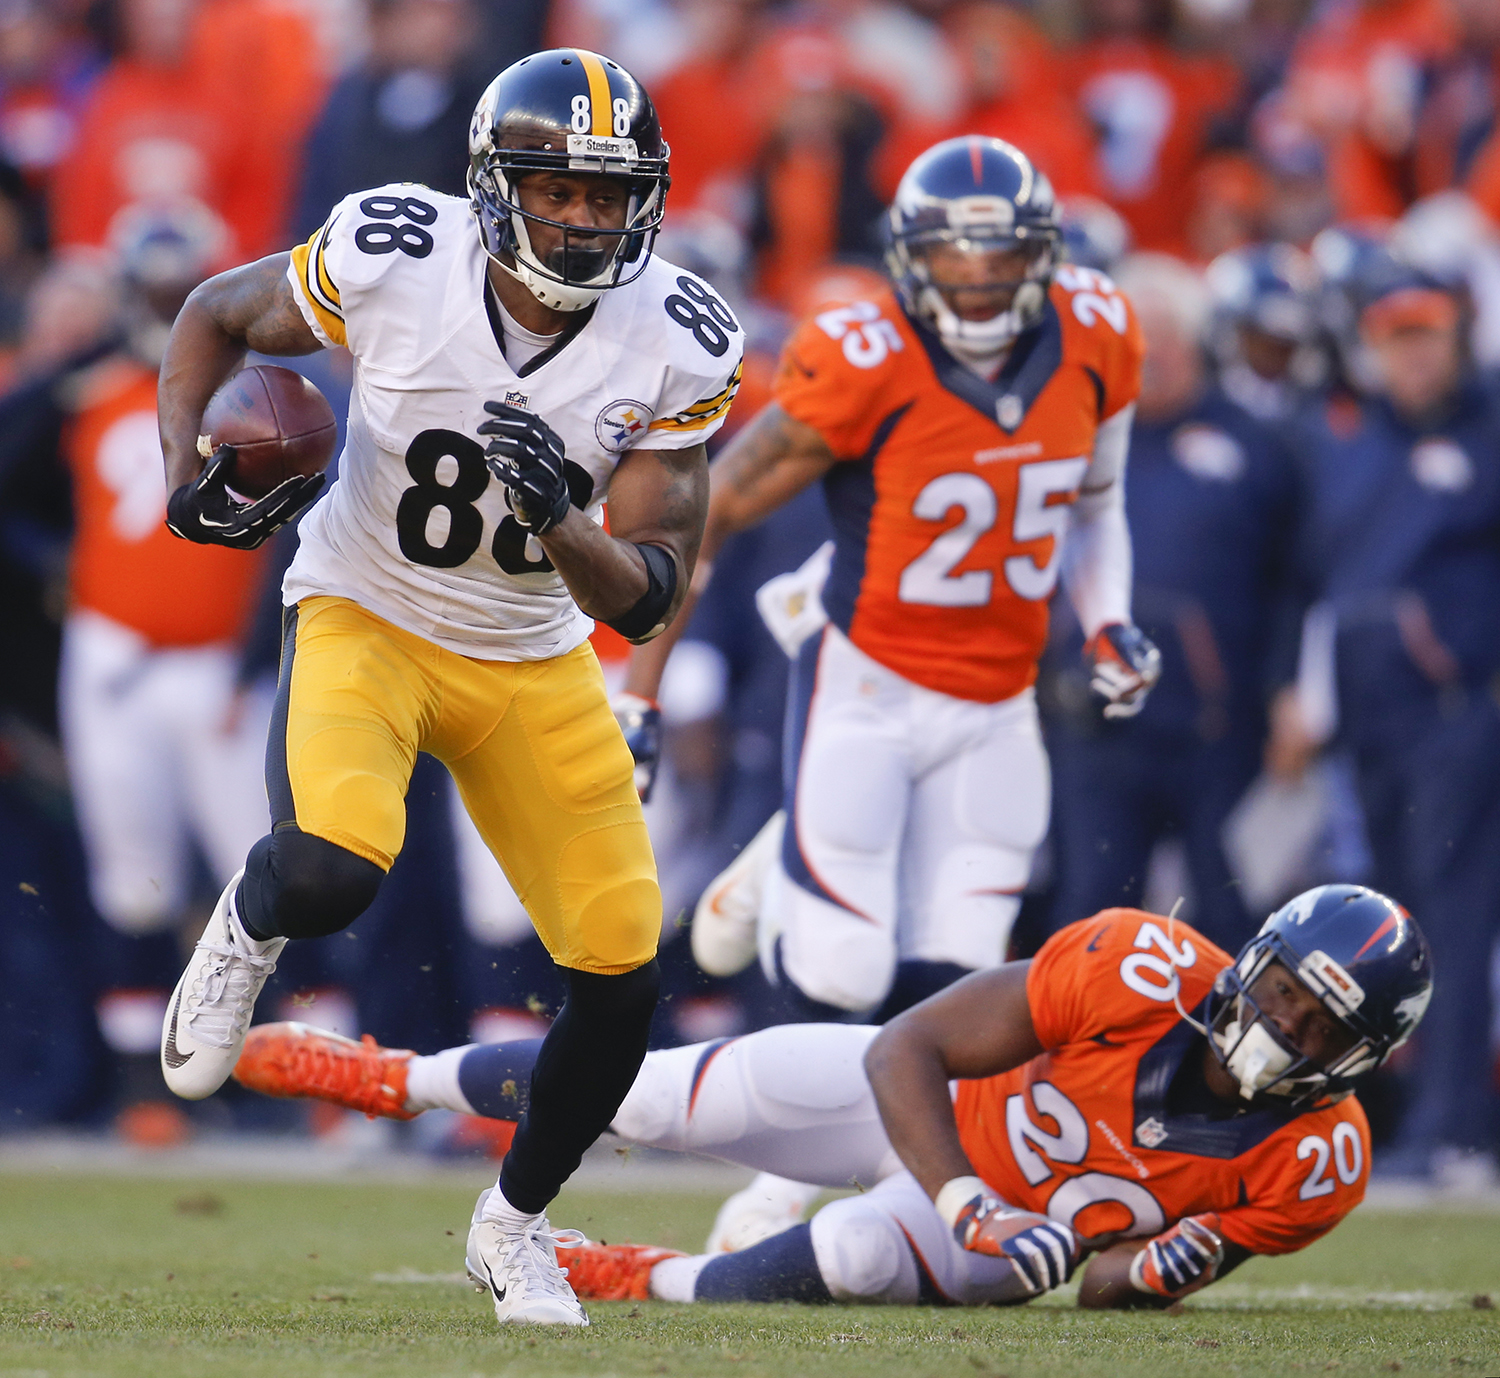 Broncos Vs. Steelers AFC Playoff Game